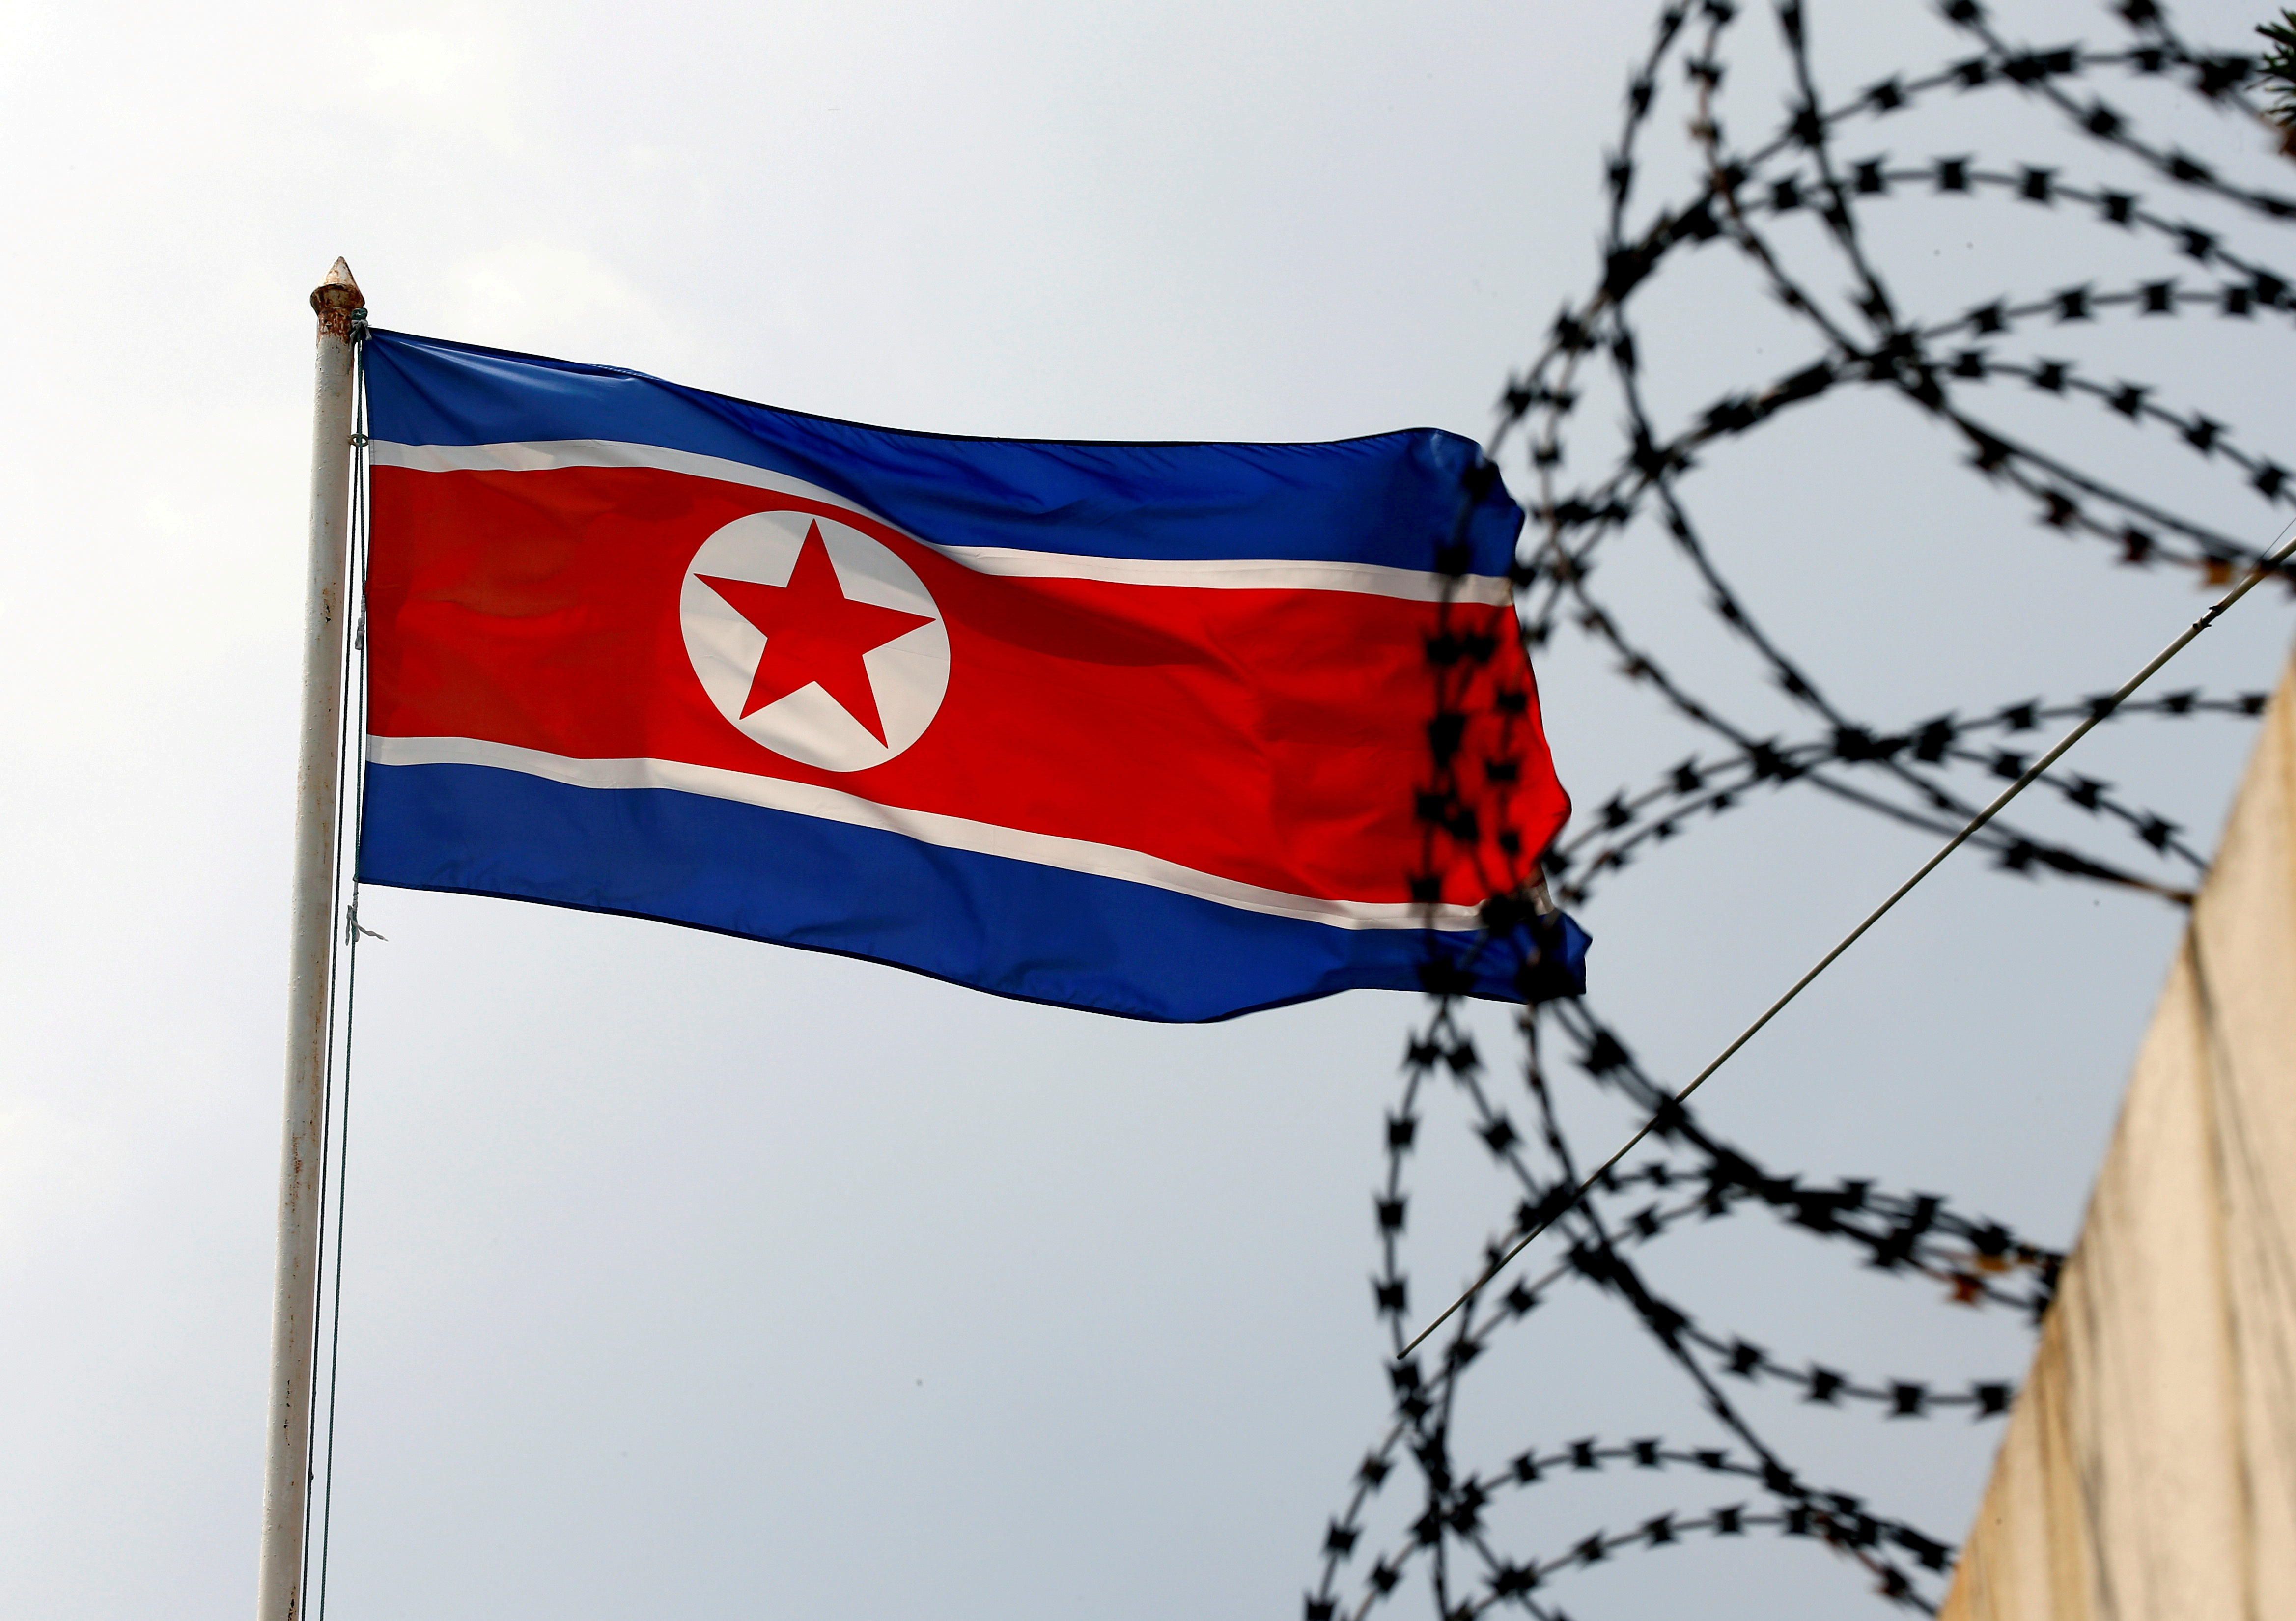 A North Korea flag flutters next to concertina wire at the North Korean embassy in Kuala Lumpur, Malaysia March 9, 2017. REUTERS/Edgar Su/File Photo